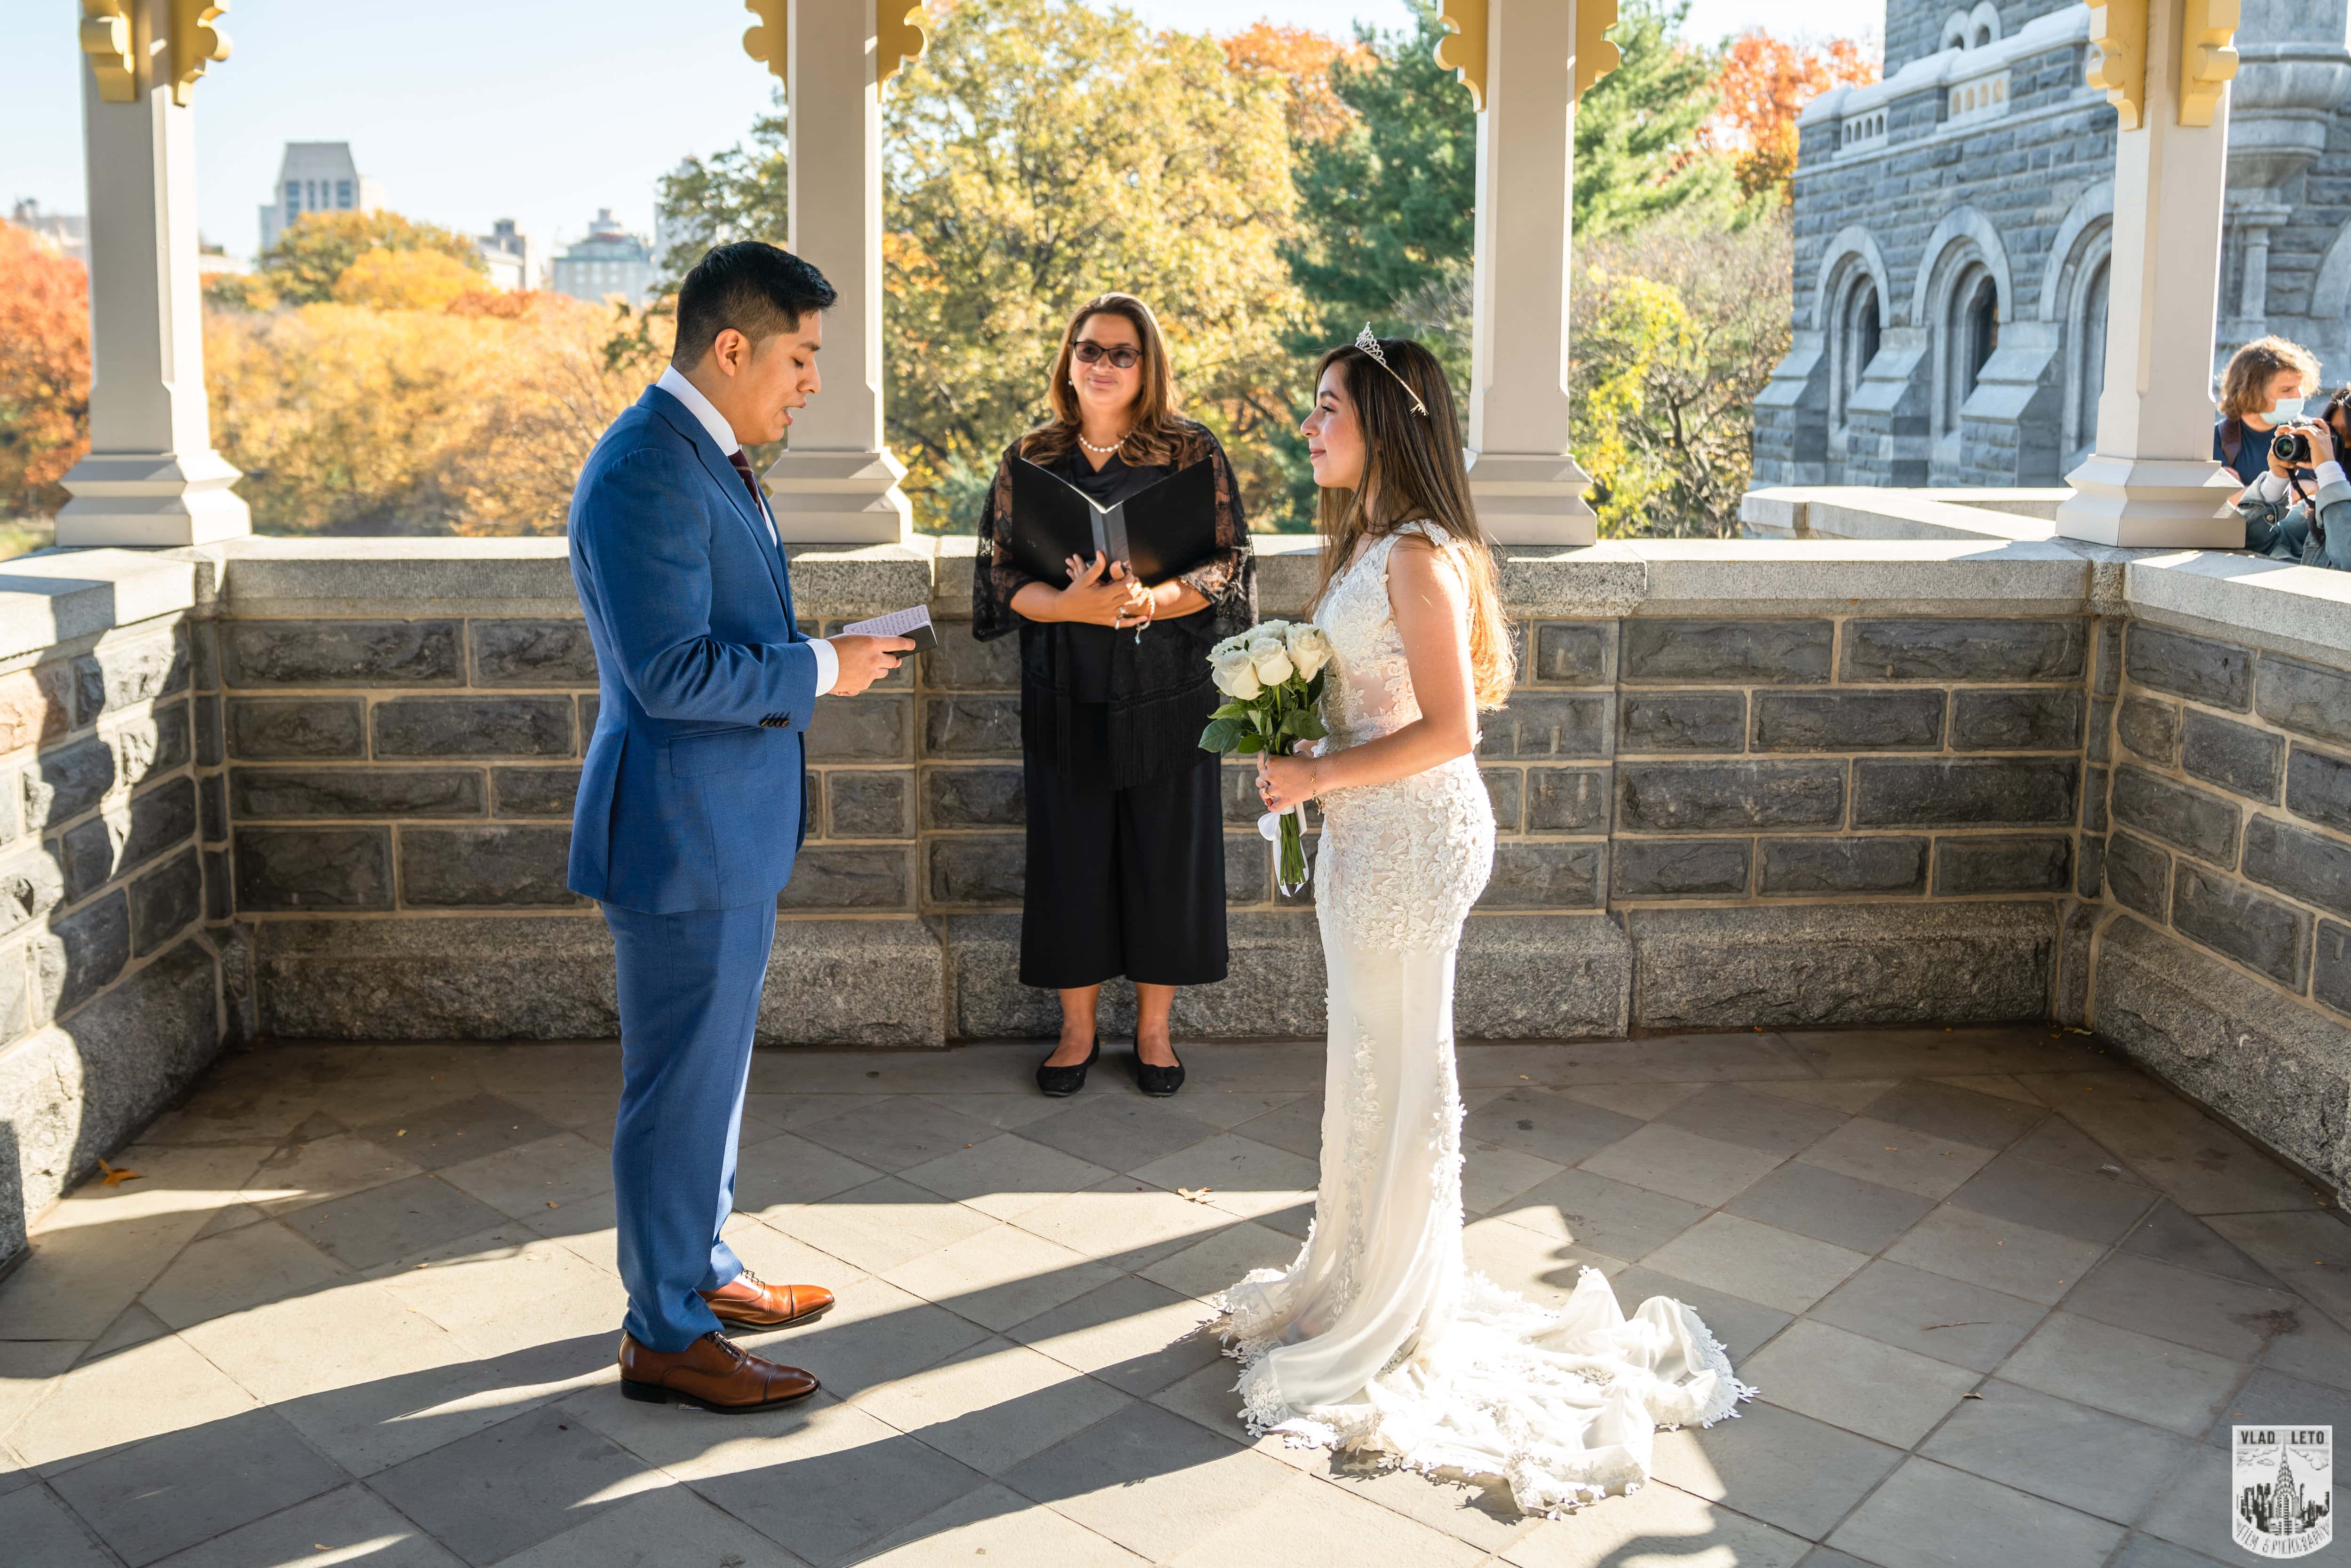 Photo 7 Francisco and Maria wedding ceremony at the Belvedere Castle